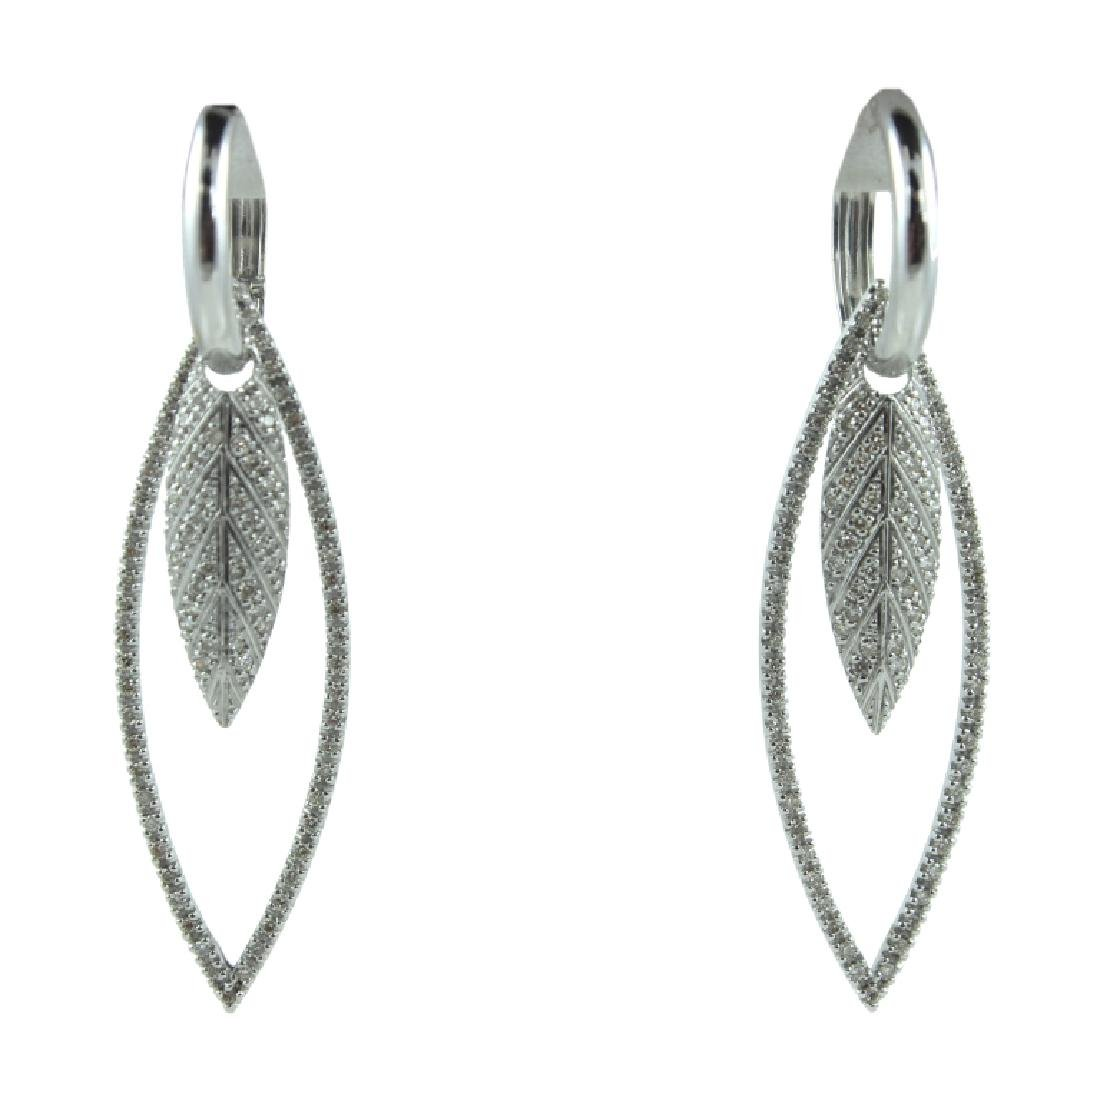 Pair 18K Leaf Design Diamond Earrings